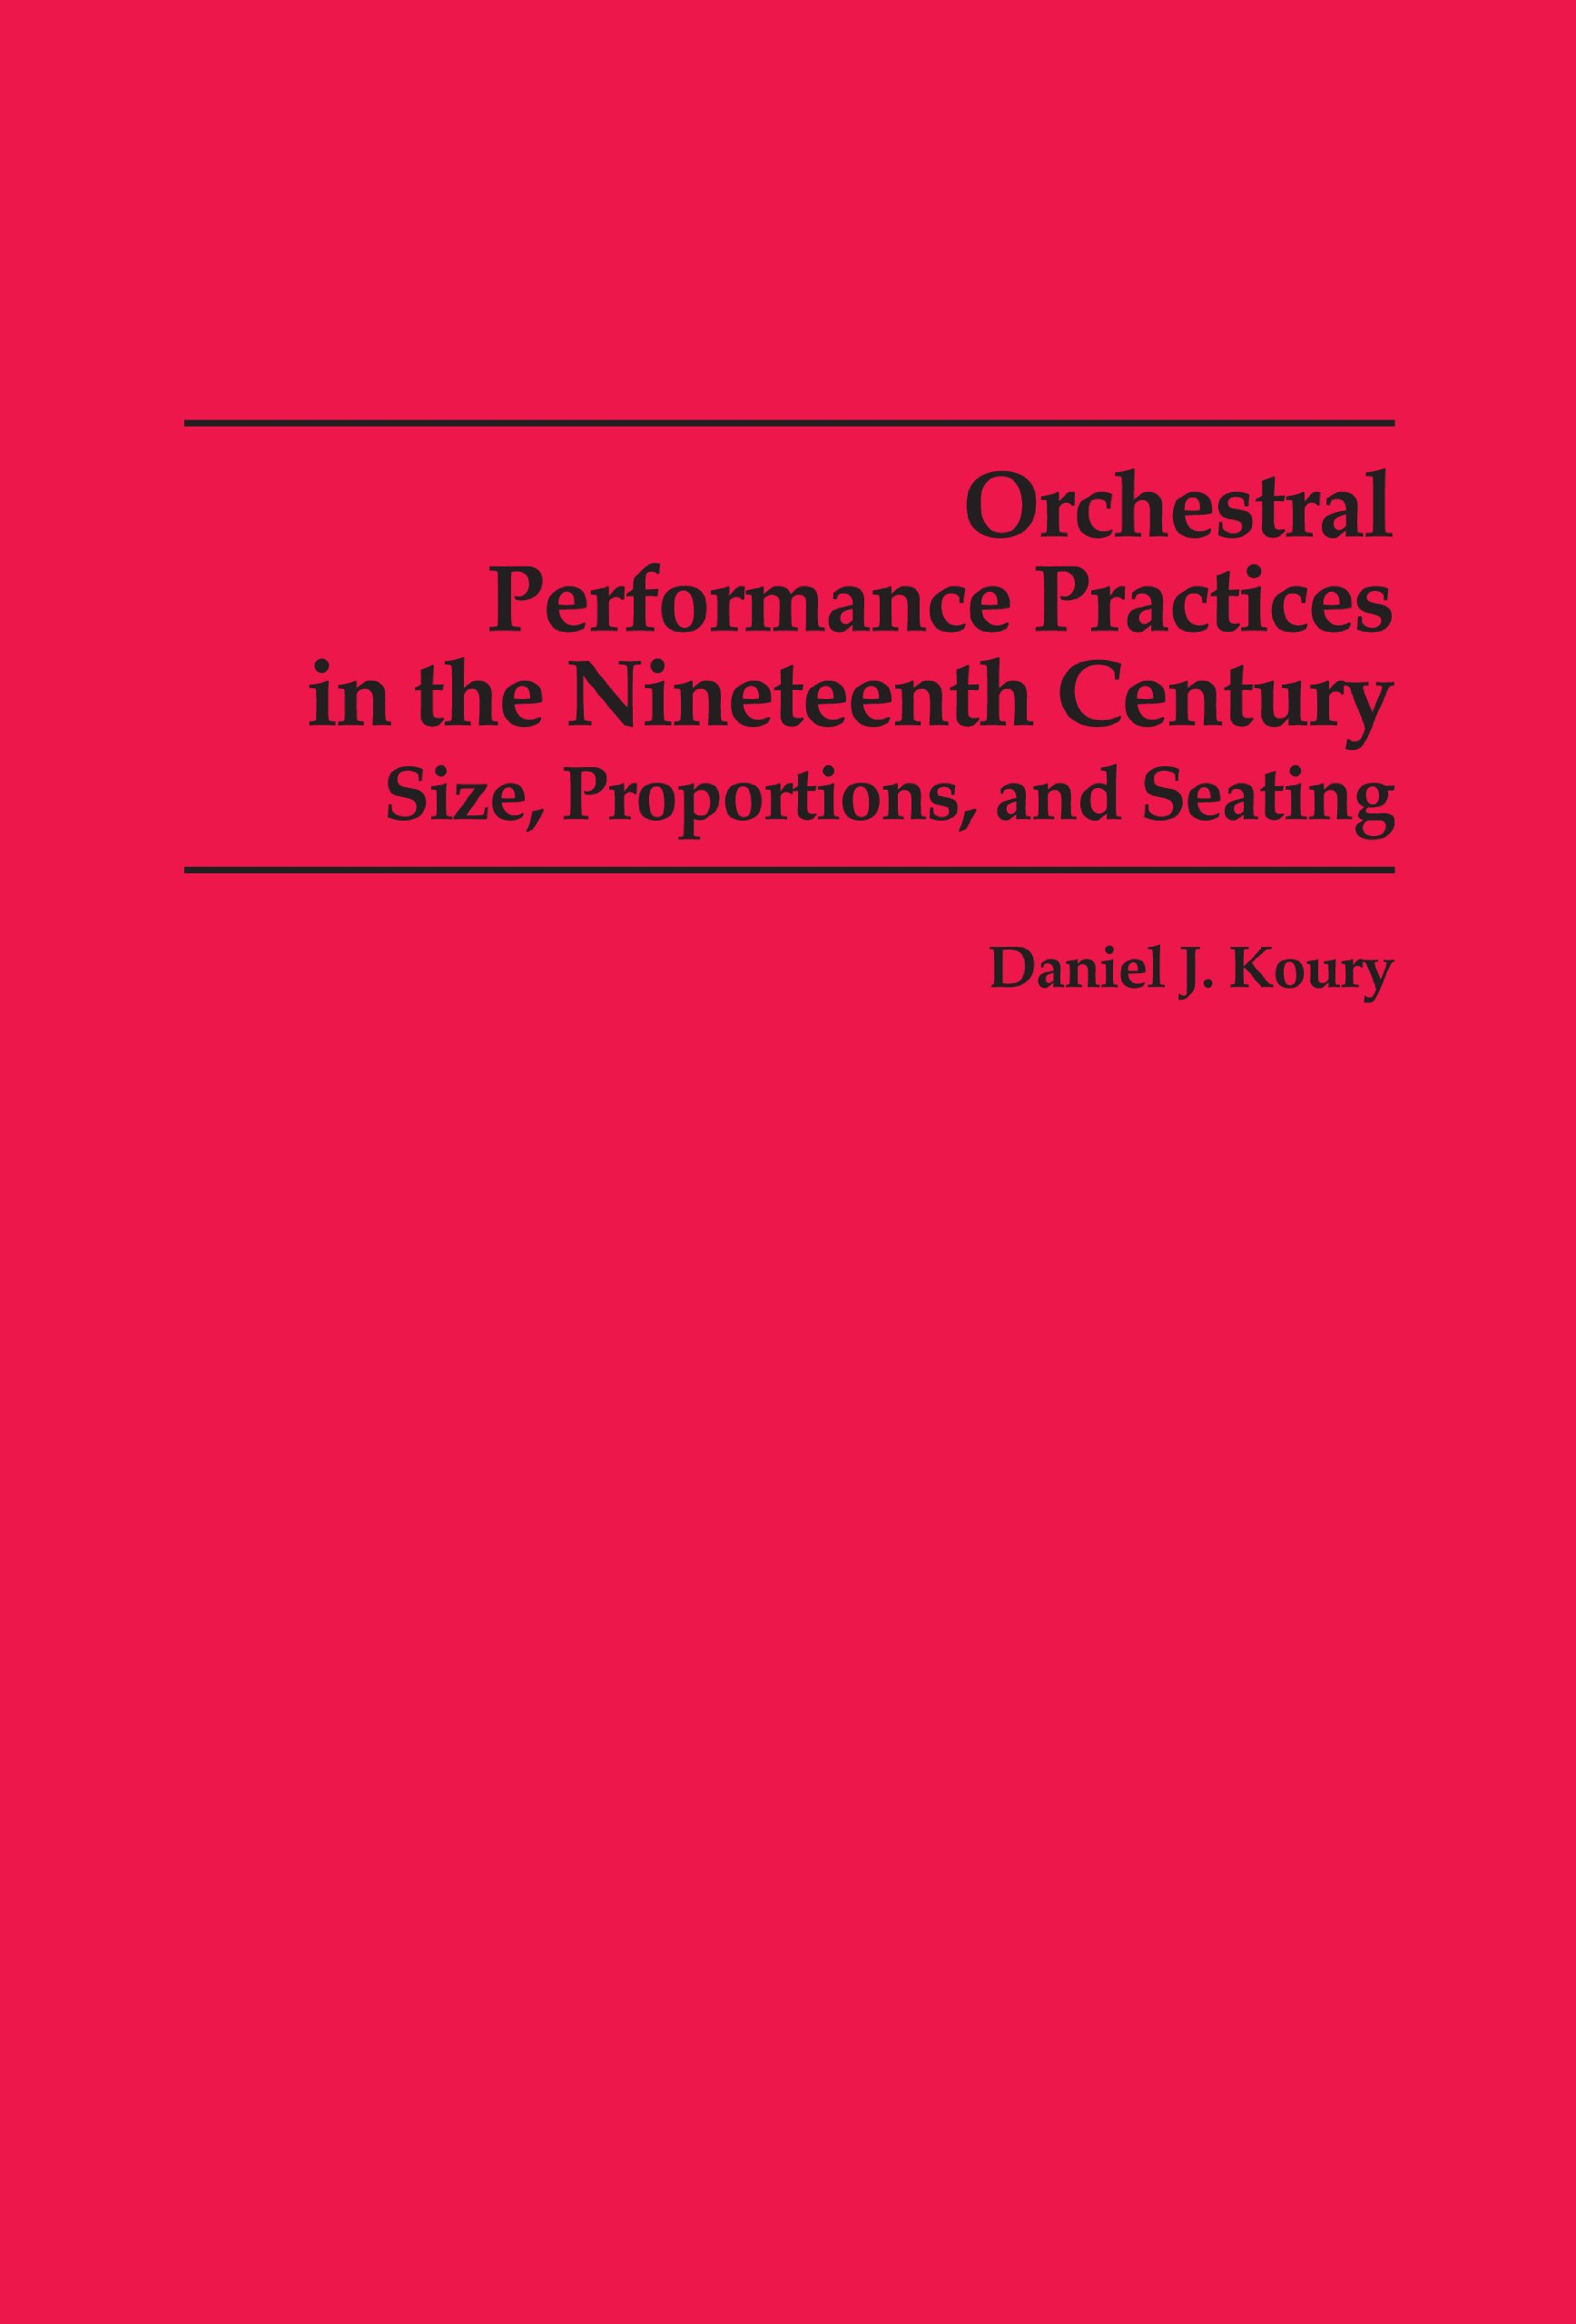 Orchestral Performance Practices in the Nineteenth Century: Size, Proportions, and Seating (Studies in Musicology)